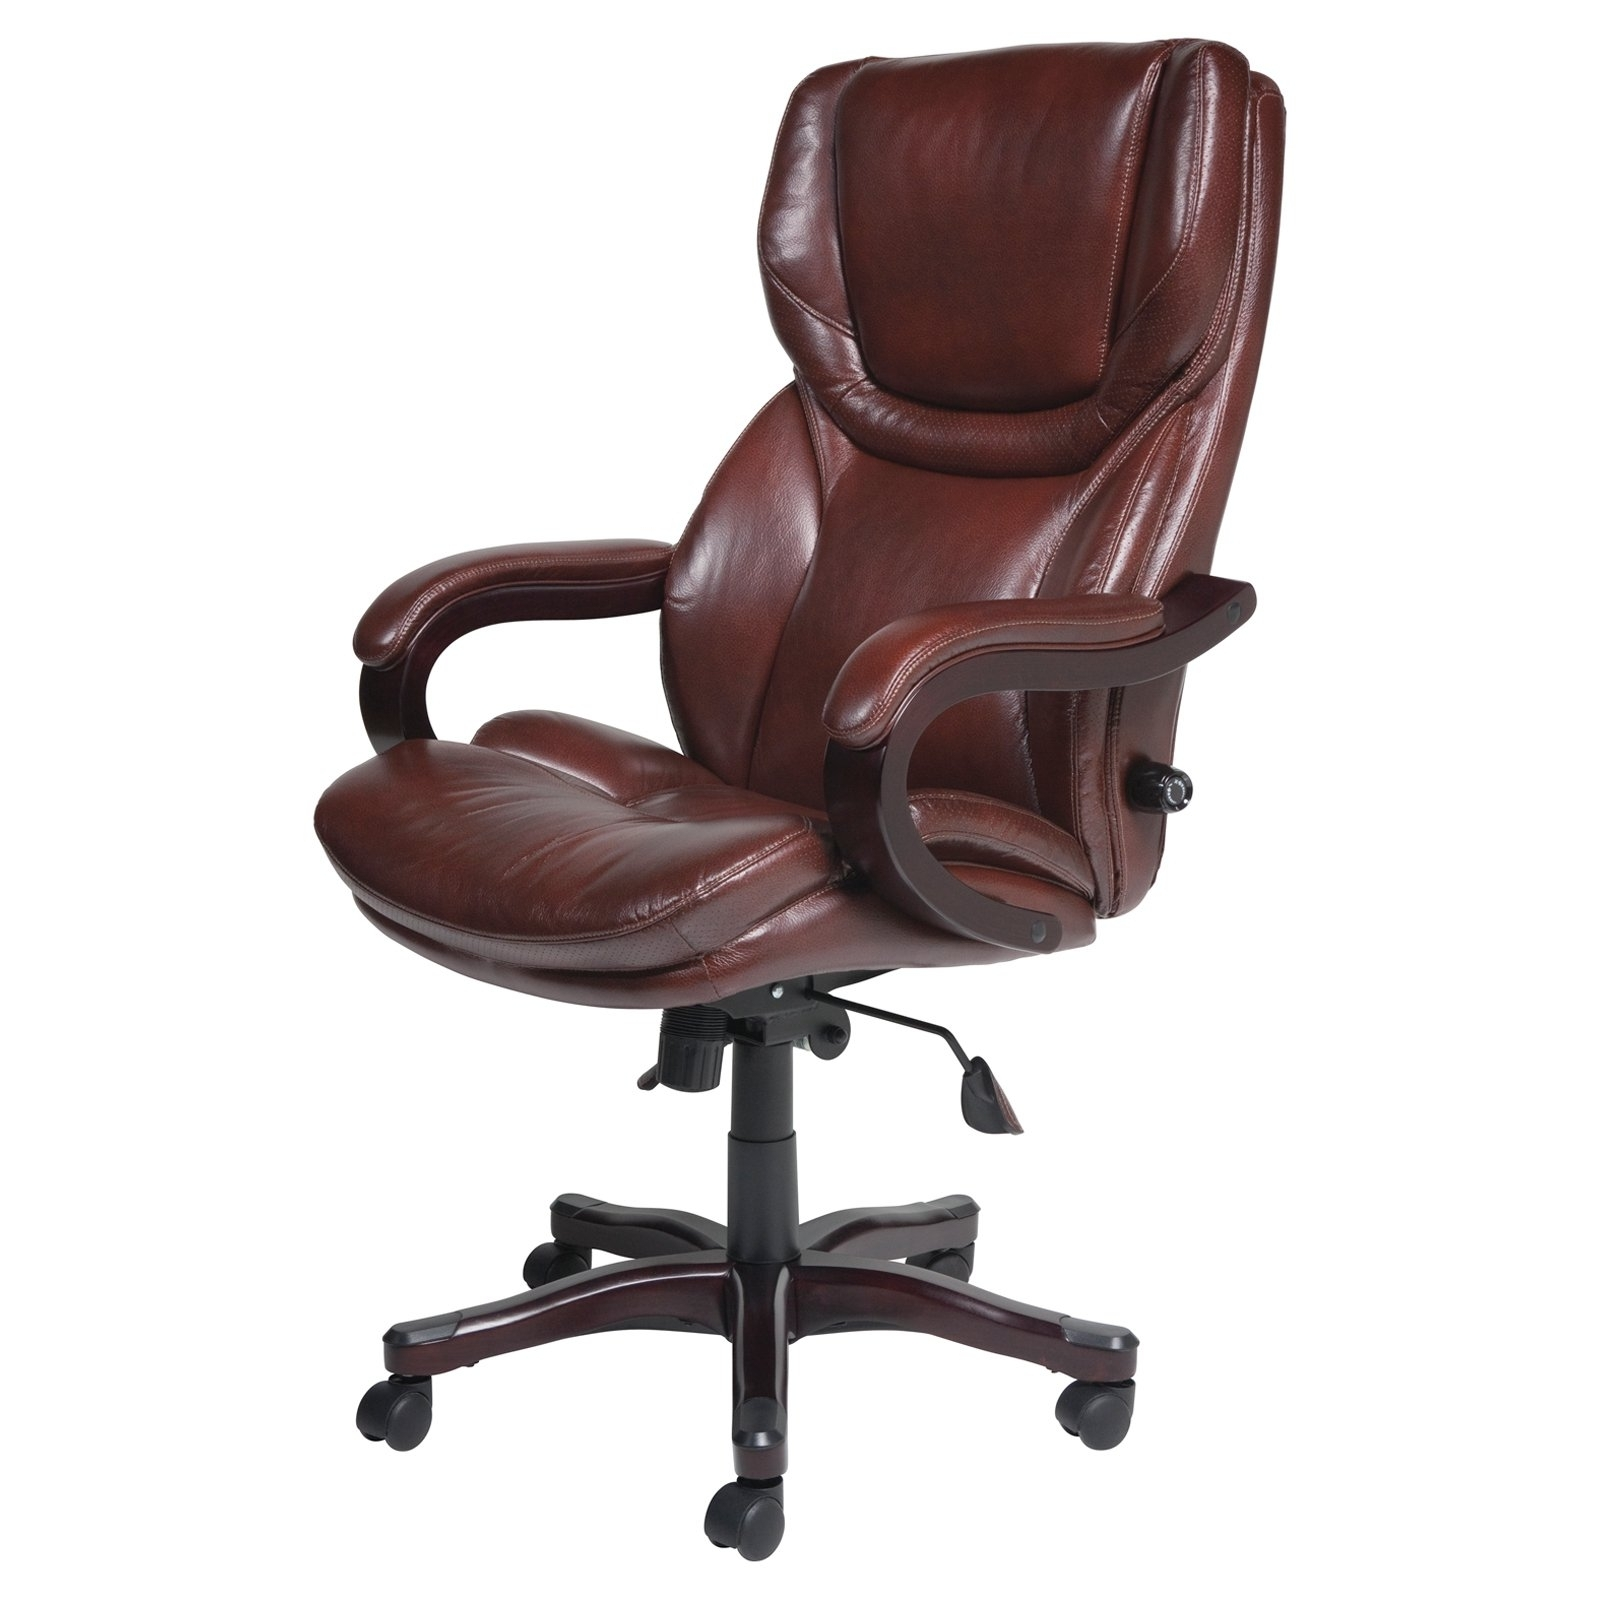 Newest Verona Cream Executive Leather Office Chairs Inside Chair : Ergonomic Black Leather Executive Office Chair Verona (View 5 of 20)